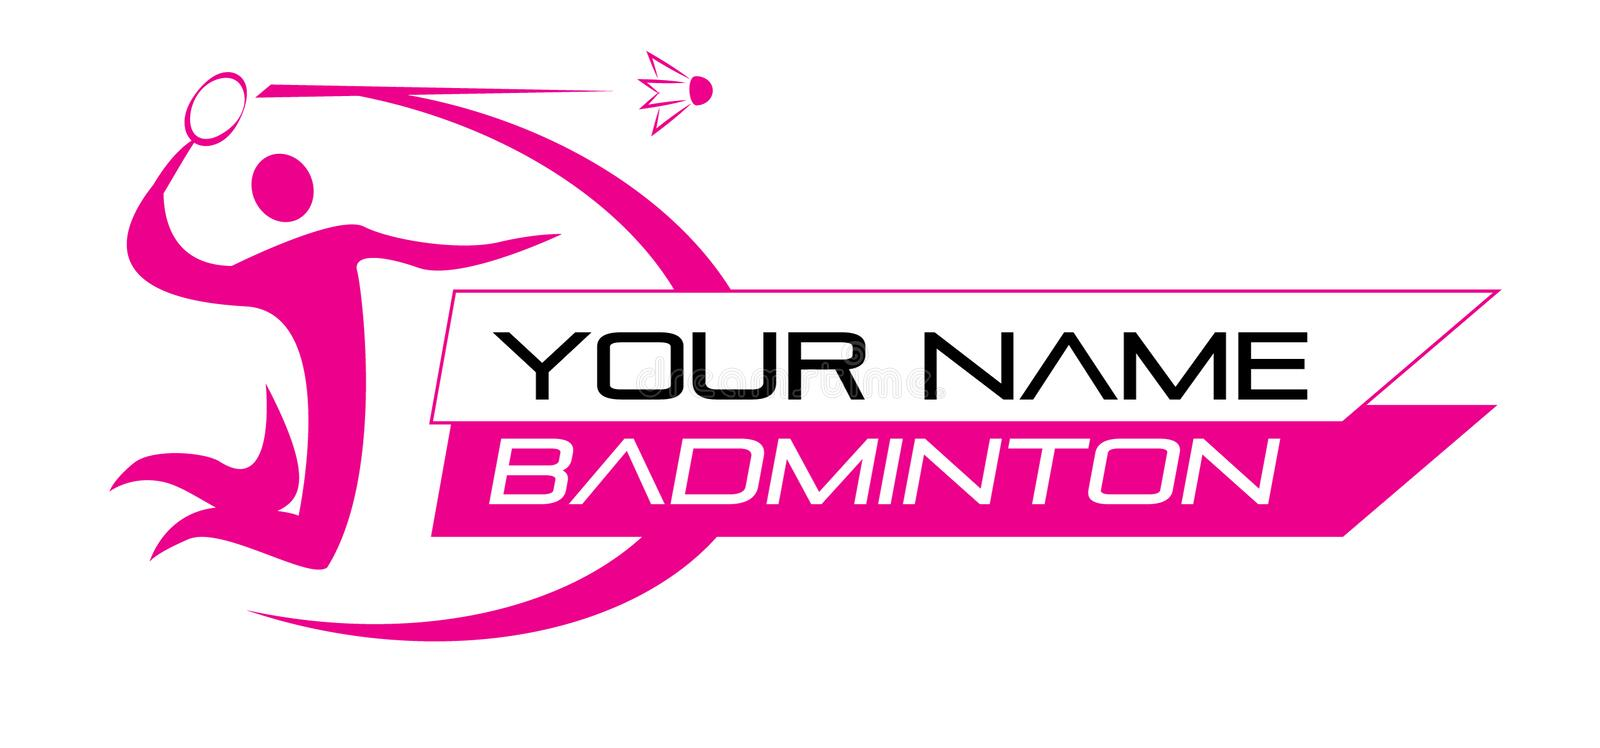 Badminton Sport Logo for Shop, Court Business or Website design. vector illustration